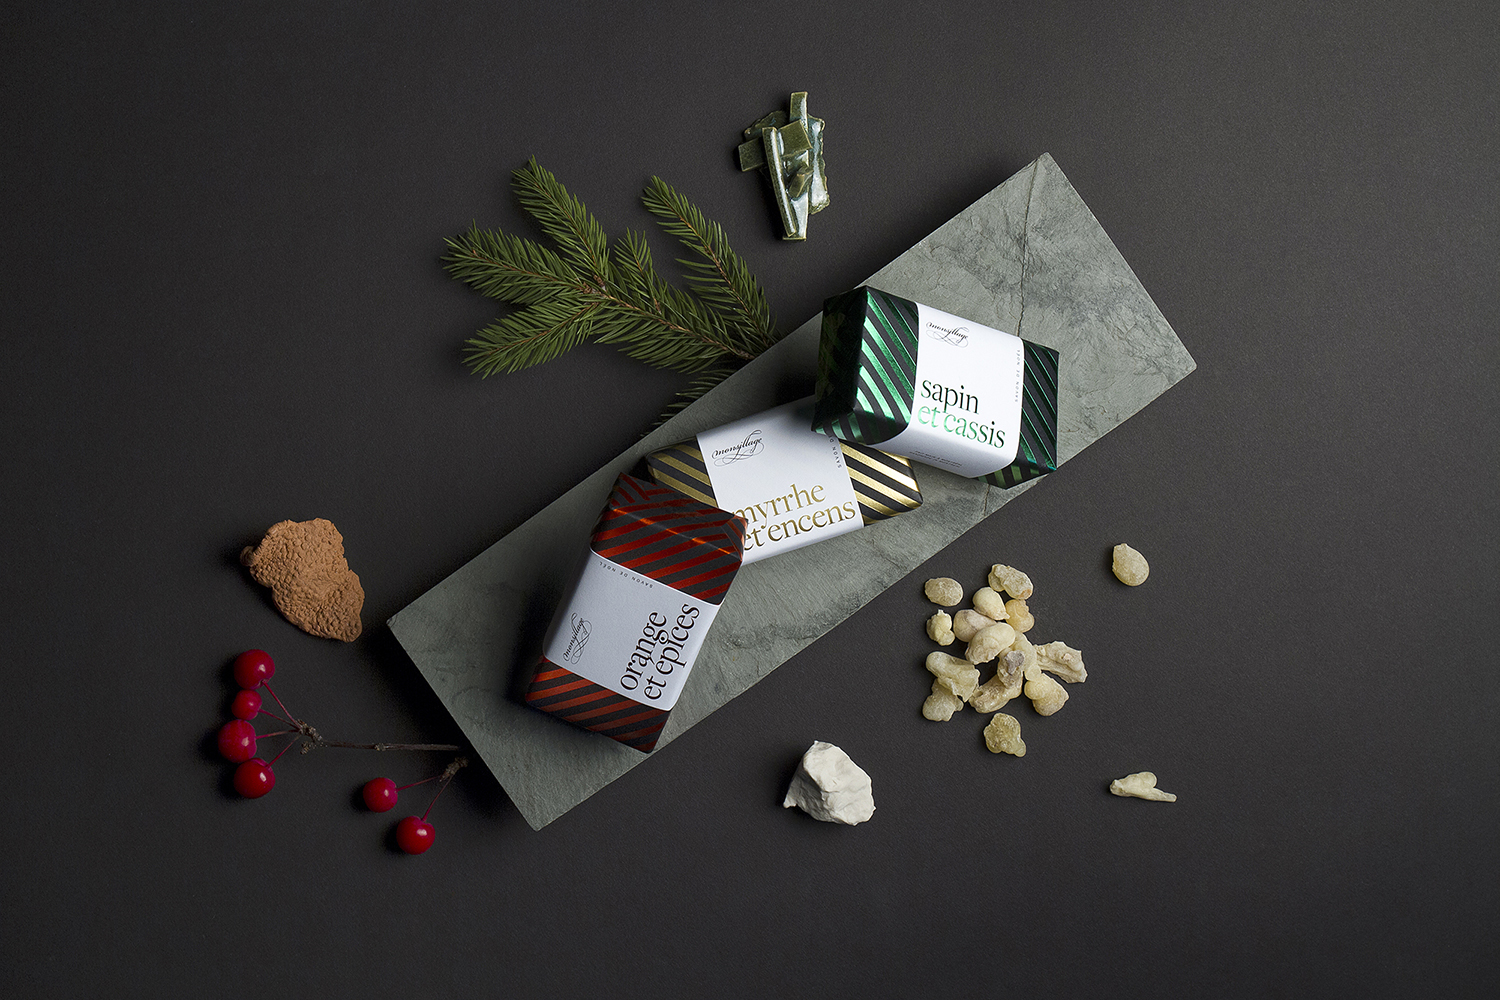 byHAUS Creates Design for Monsillage Xmas Soap Packaging